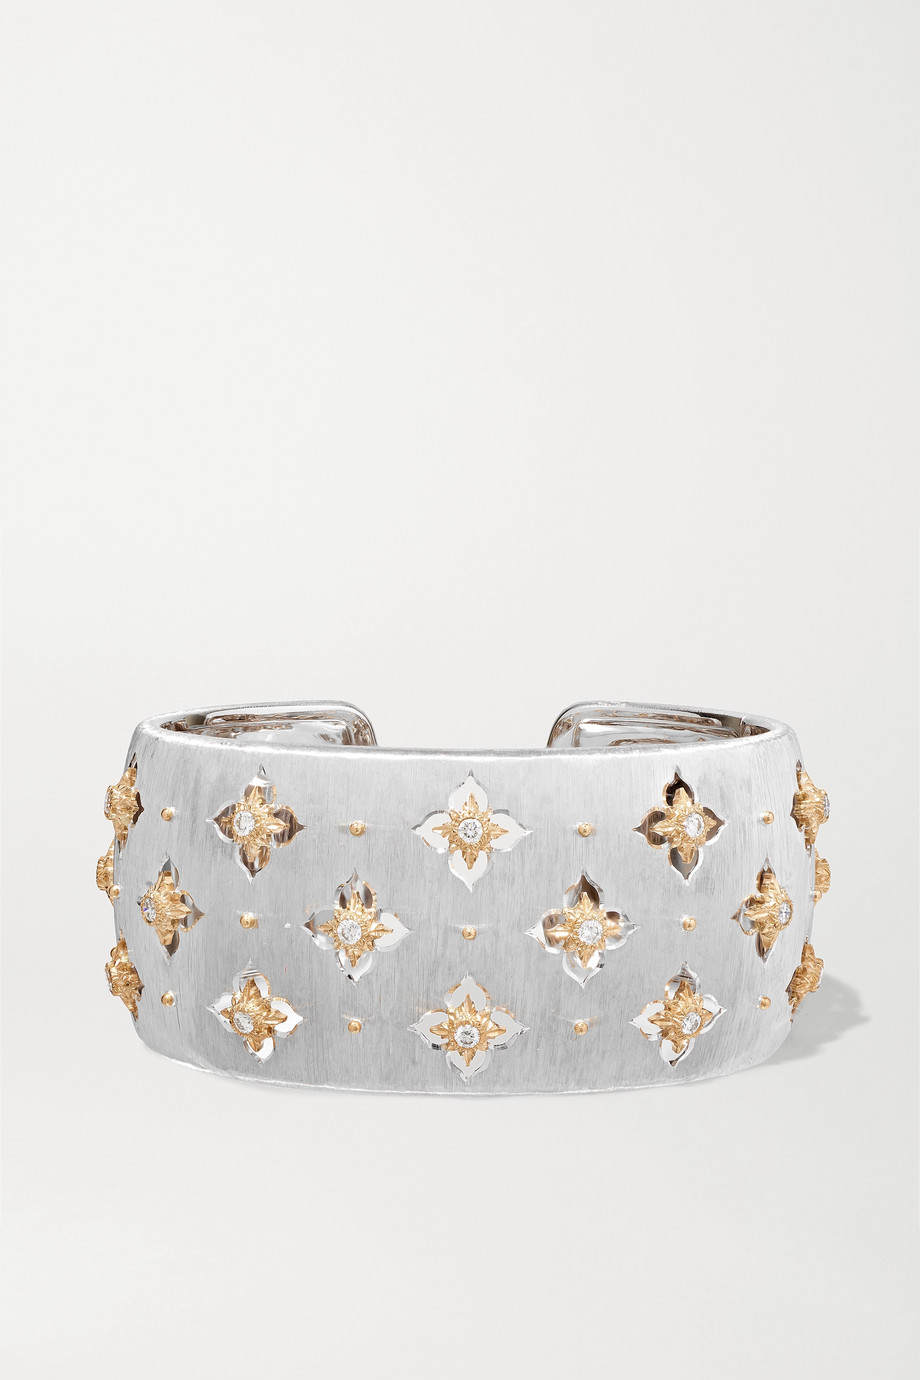 BUCCELLATI Macri Giglio 18-karat white and yellow gold diamond cuff